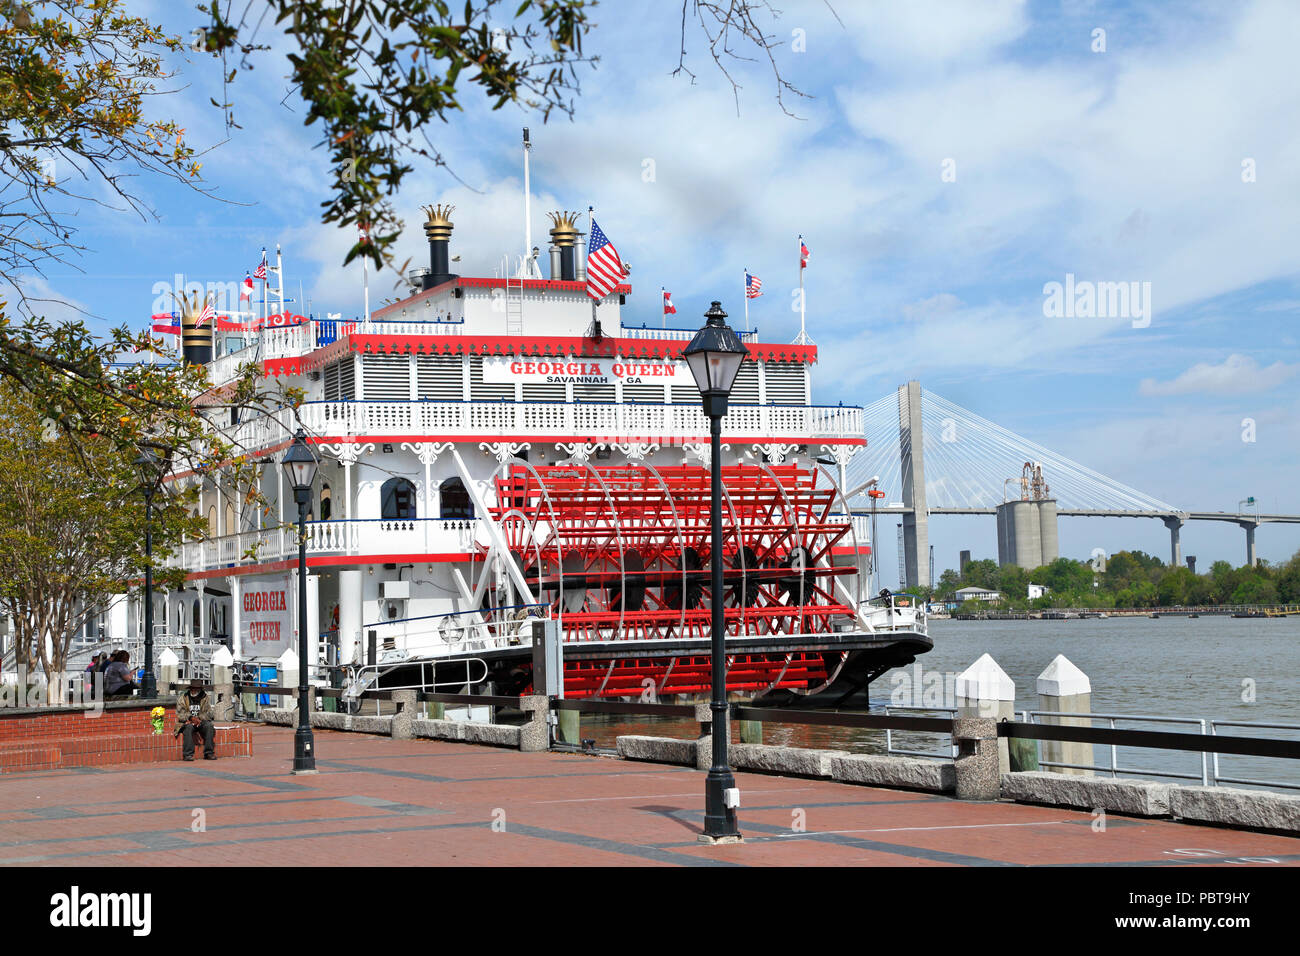 Savannah, Georgia. Georgia Queen cruise ship docked in Savannah river front. Stock Photo